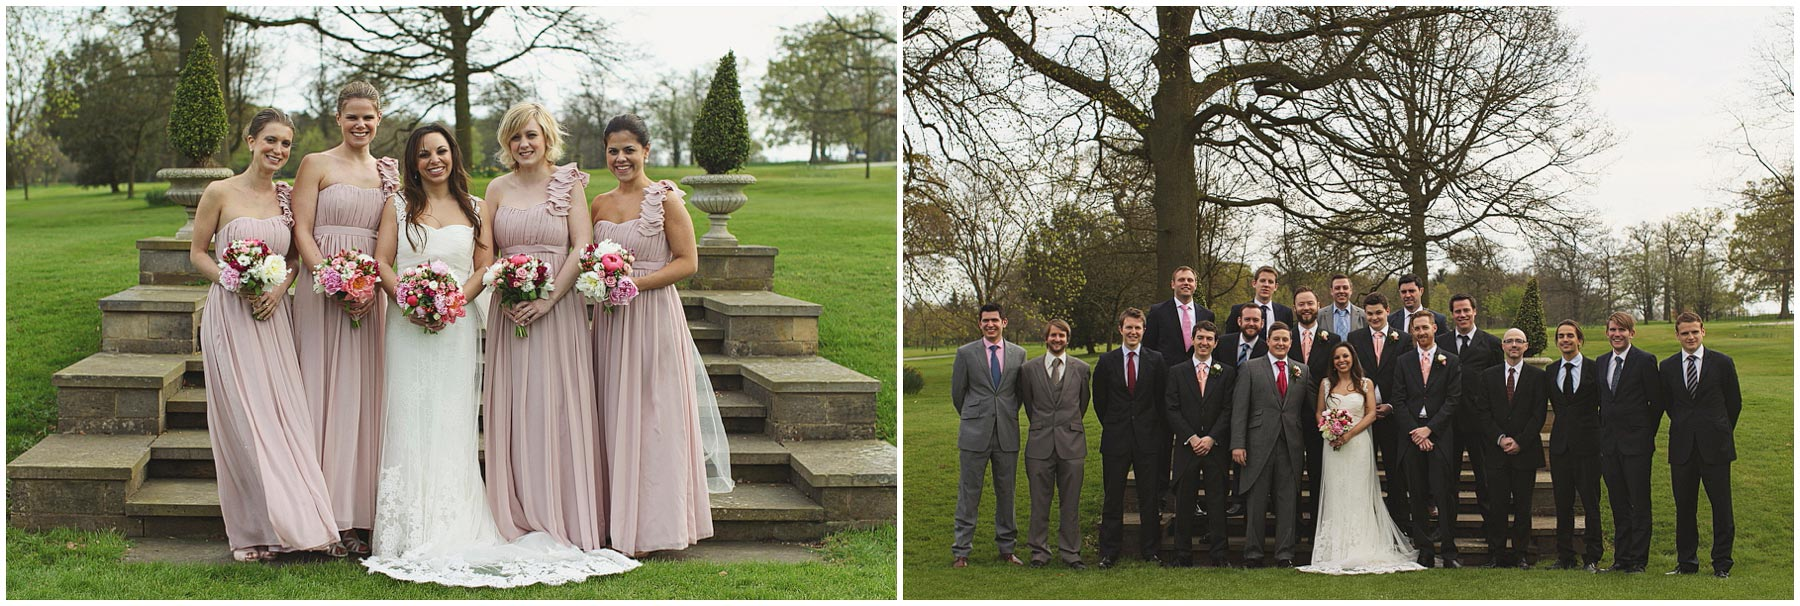 Rudding-Park-Wedding-Photography_0088